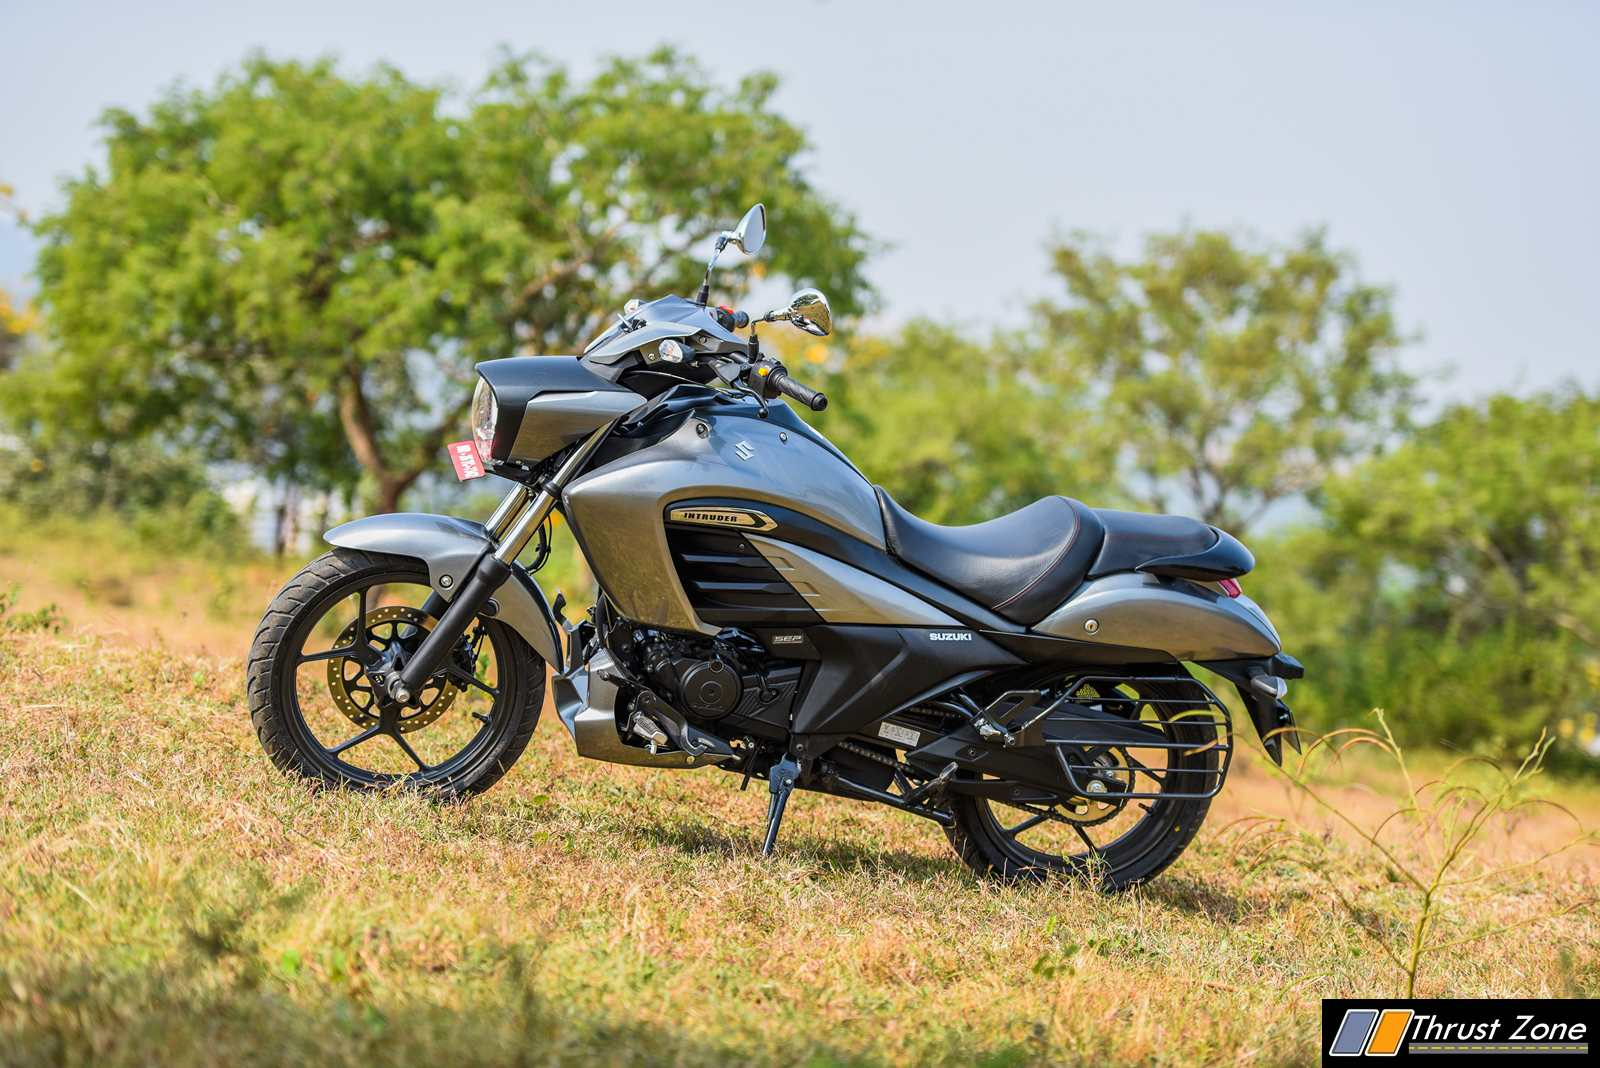 Suzuki Intruder Fi Will Come In 2018 Will Take The Price Higher